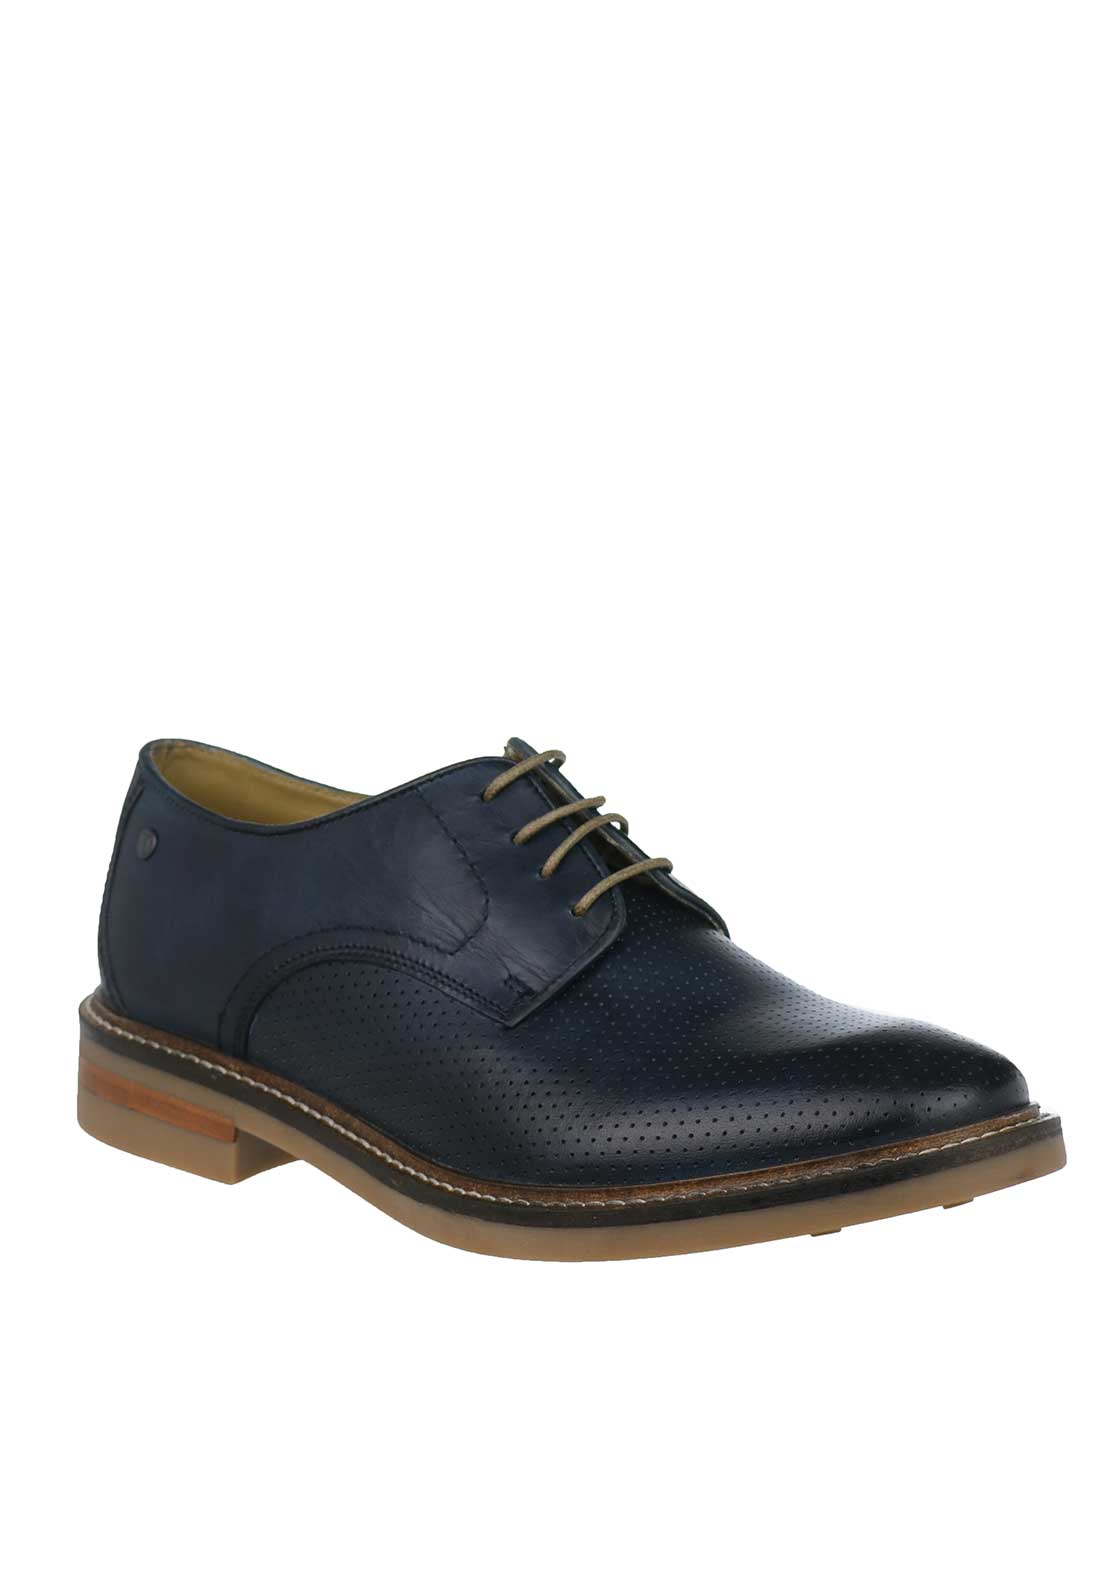 Base London Stanford Washed Leather Shoes, Navy